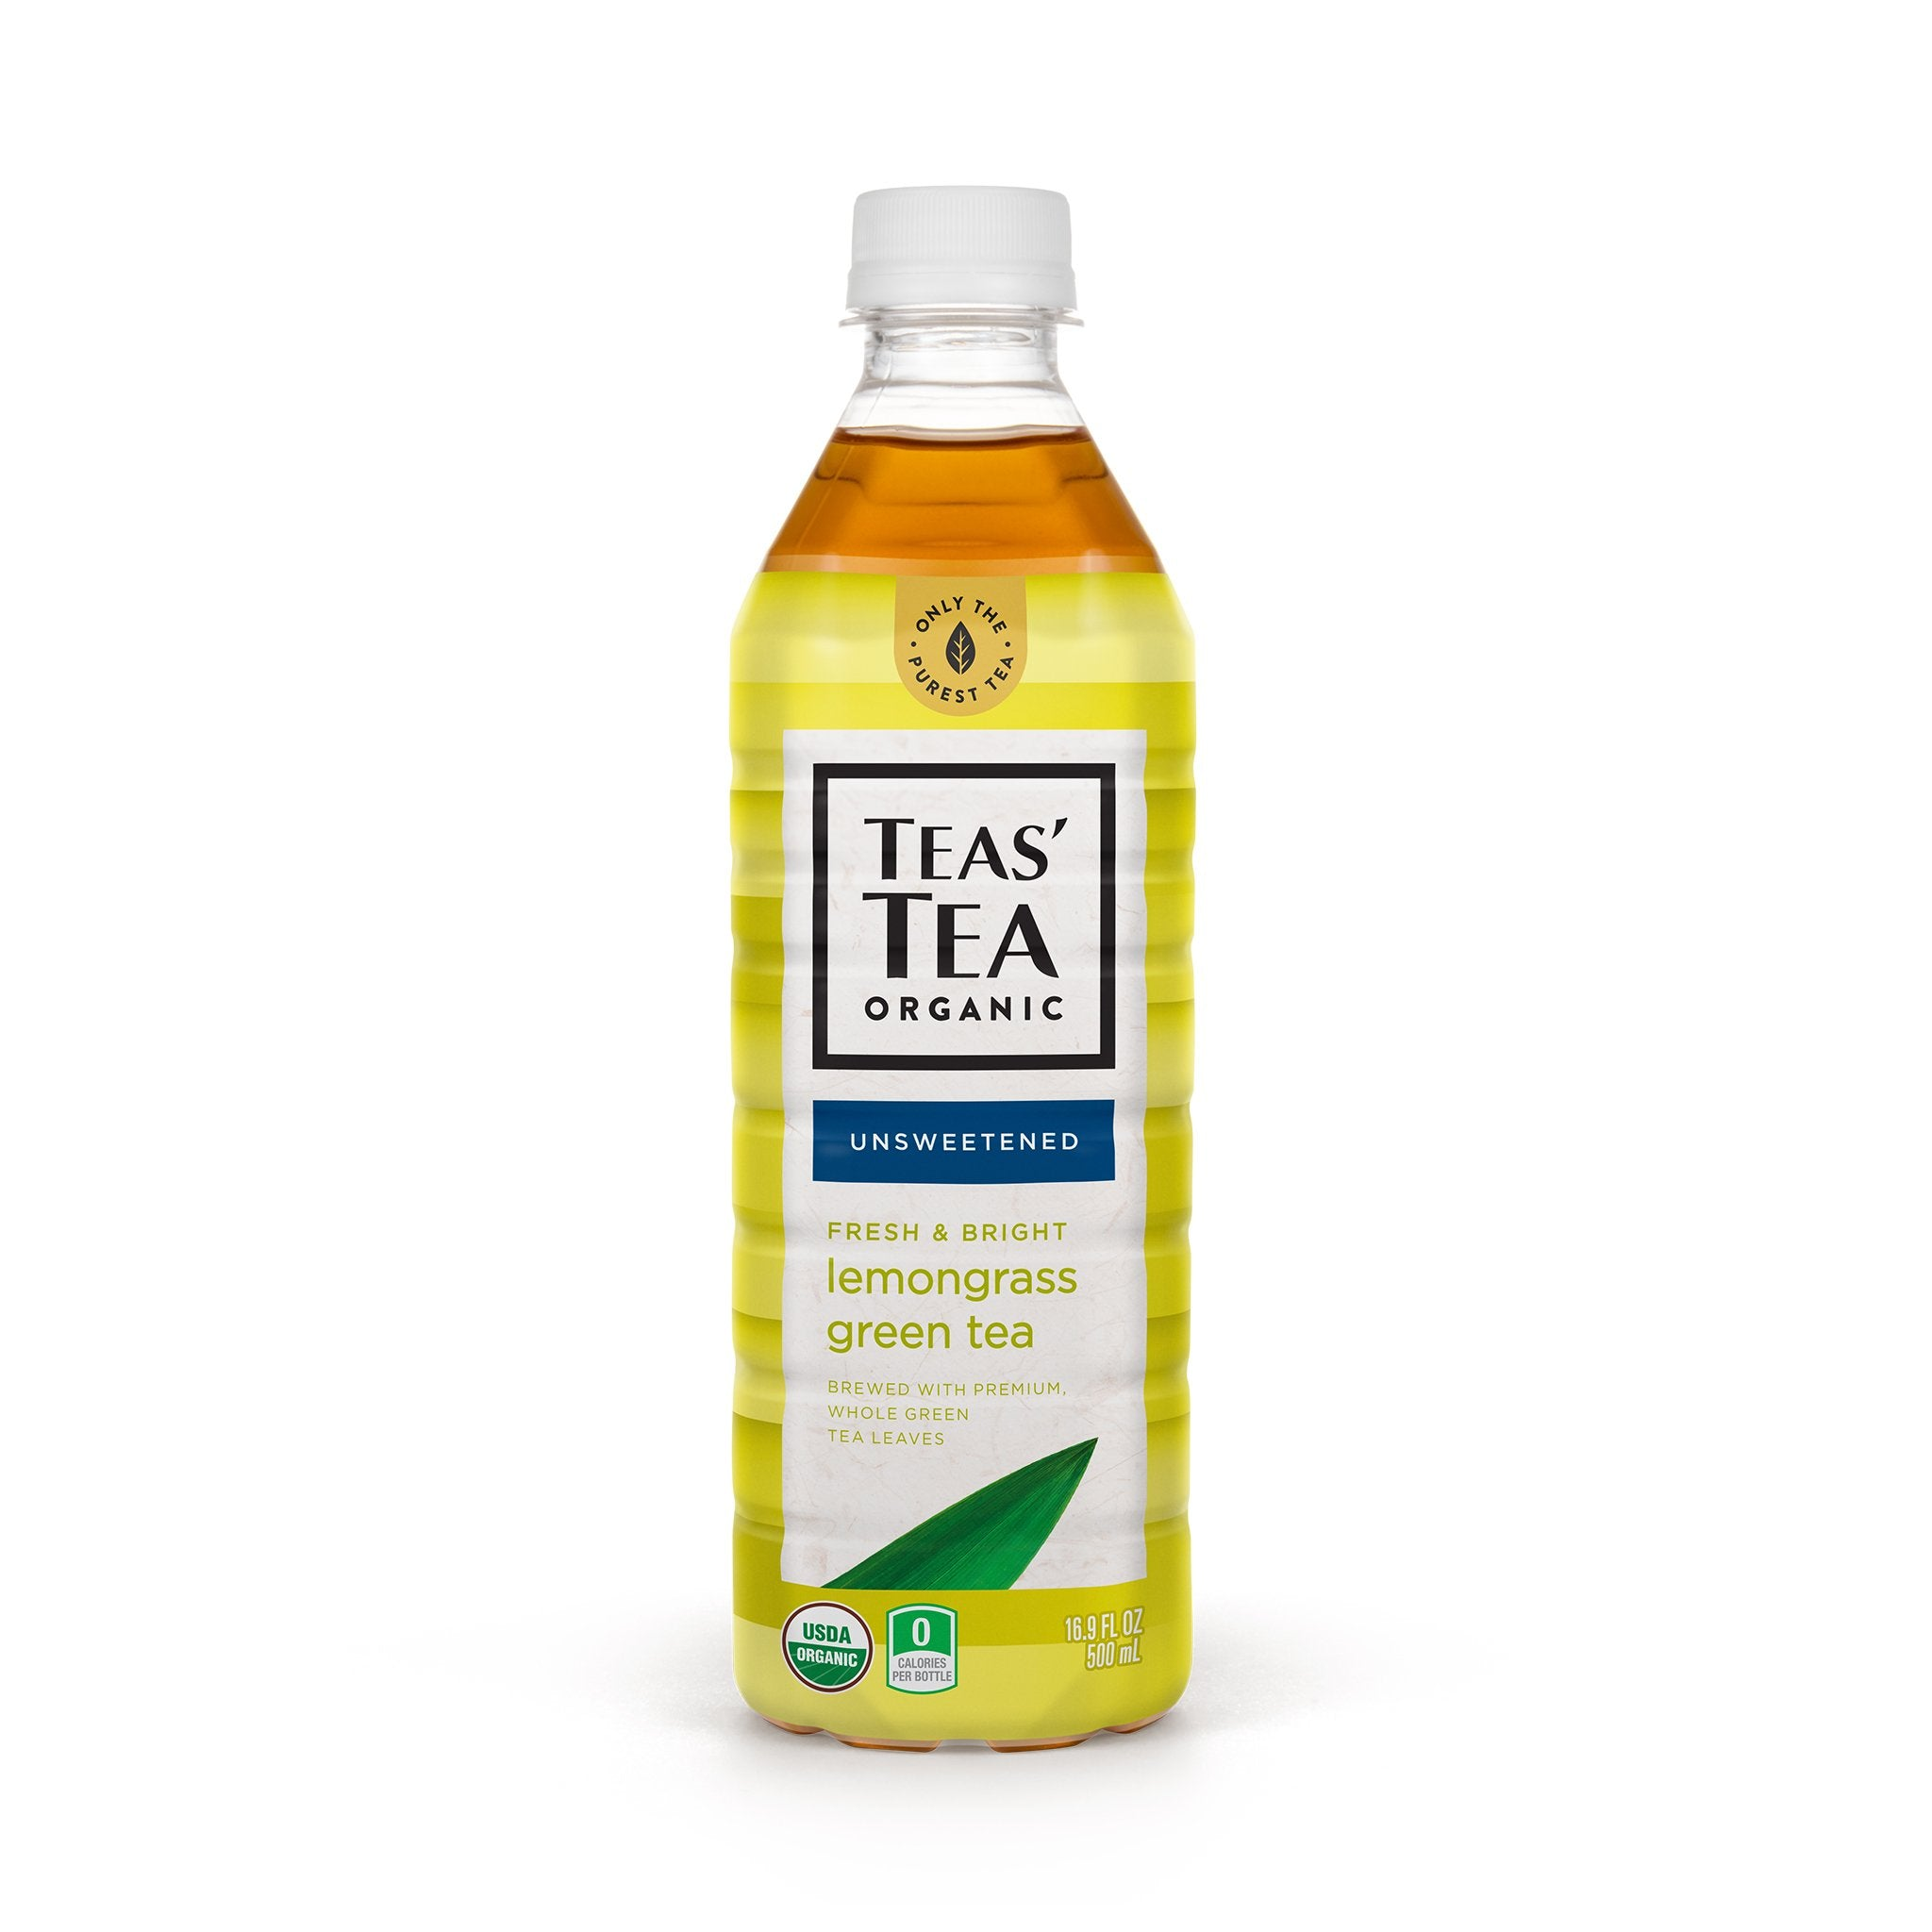 Unsweetened Lemongrass Green Tea